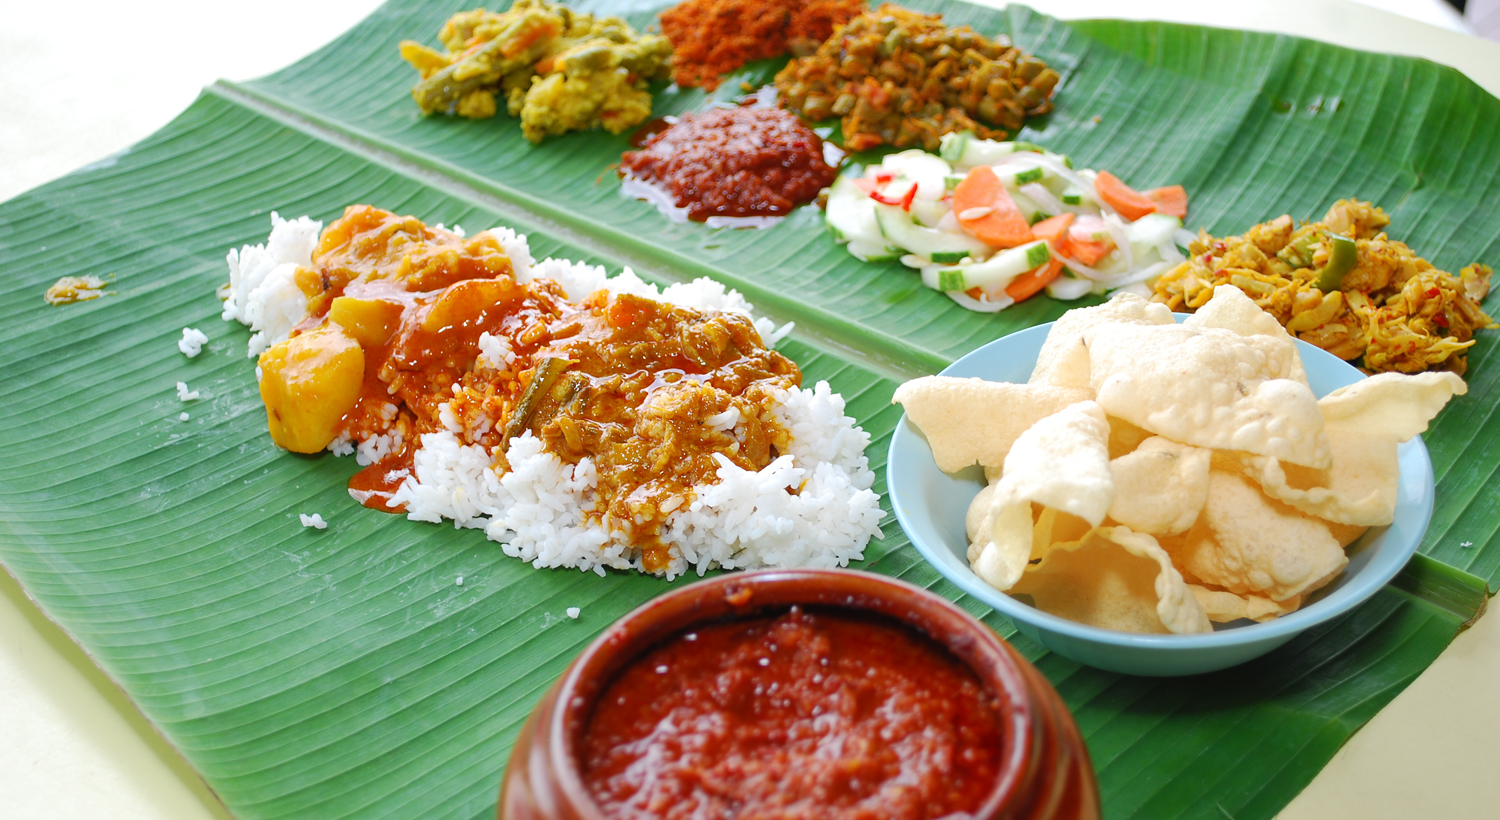 Banana Leaf Food Pictures